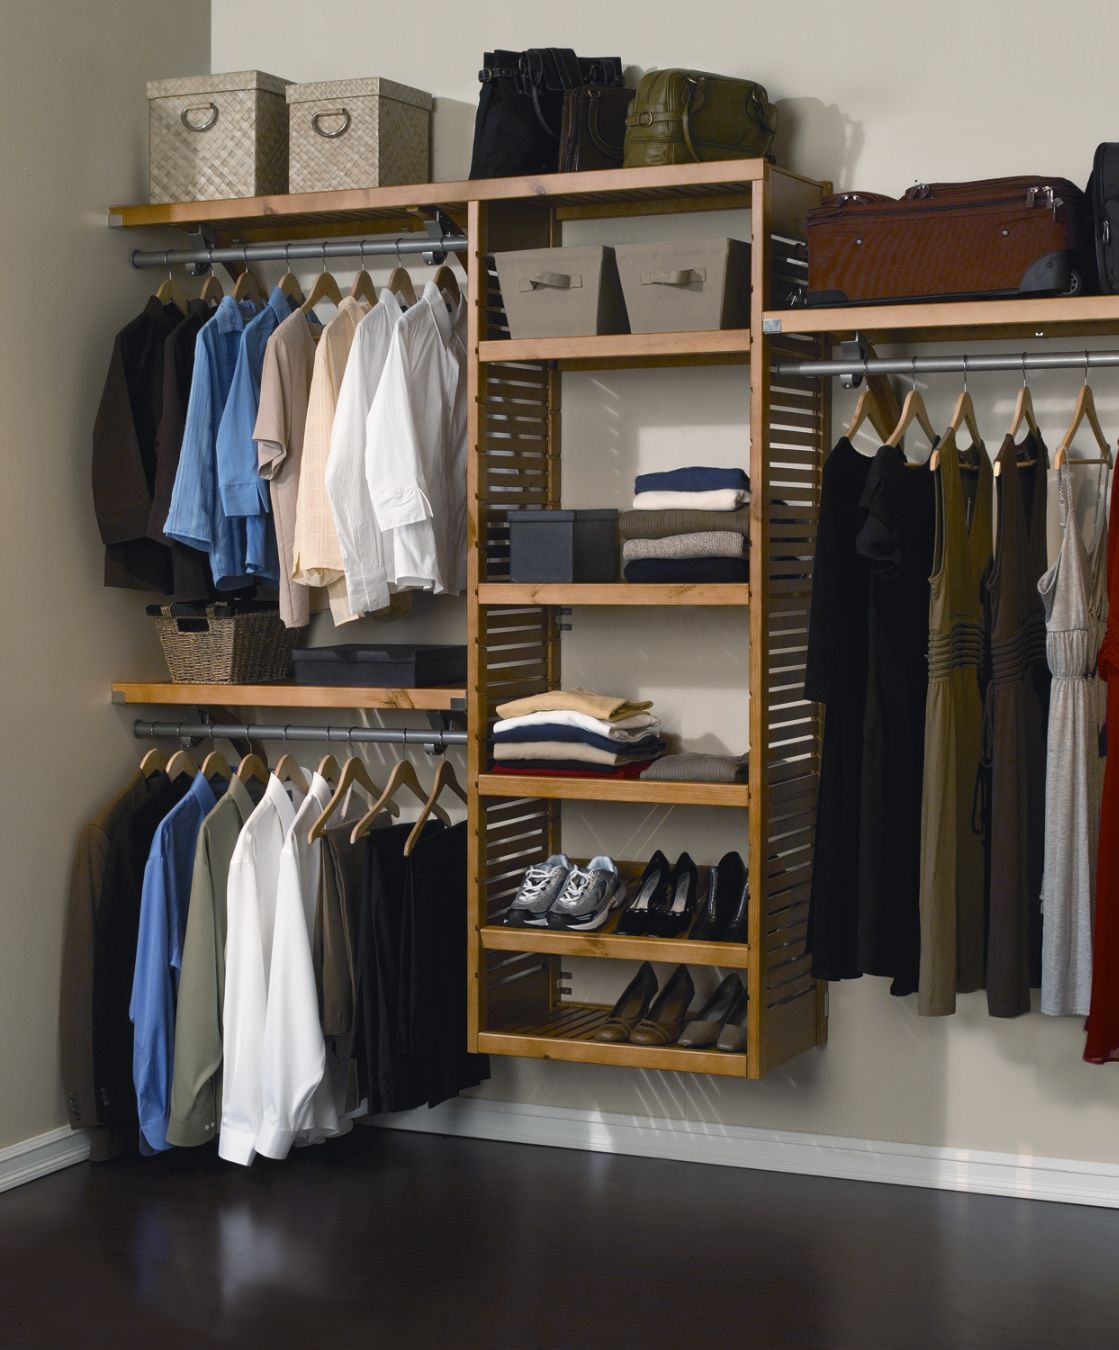 Ordinaire Open Closet Ideas Everyone Wants To Have A Room Only Made For Their Shoes,  Clothes, And Other Accessories. Having Your Own Closet Could Be A Good Idea  For ...